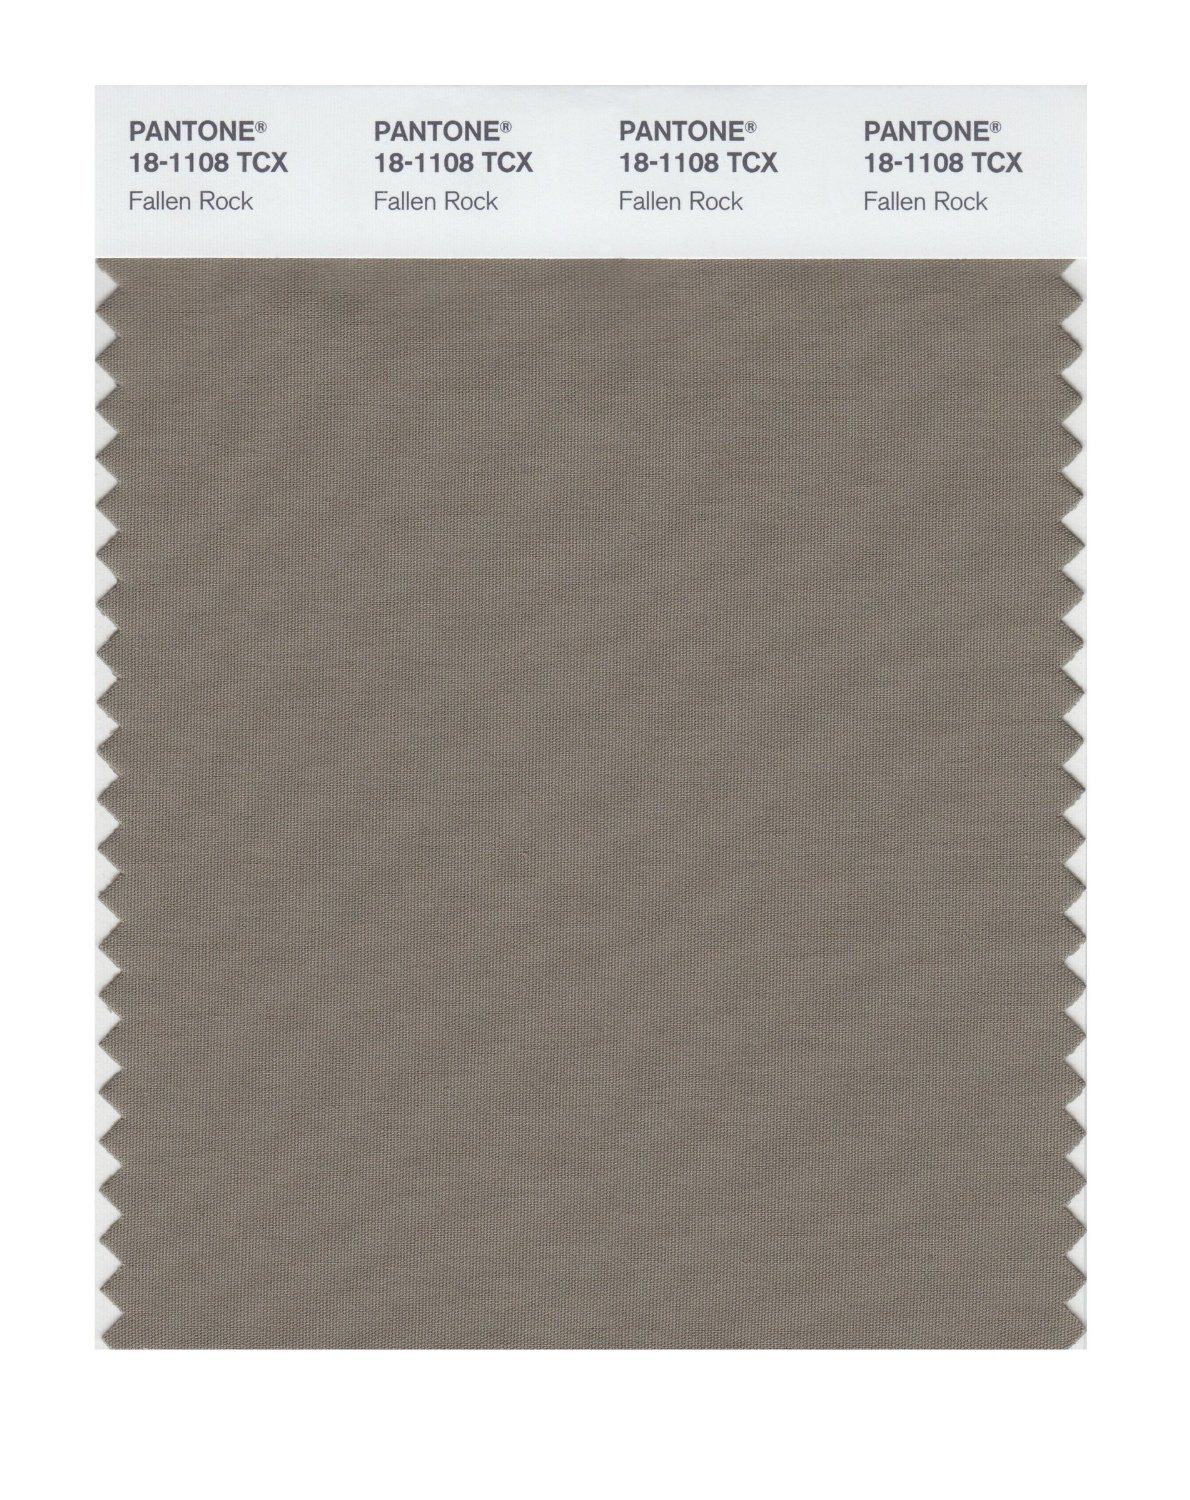 Pantone 18-1108 TCX Swatch Card Fallen Rock